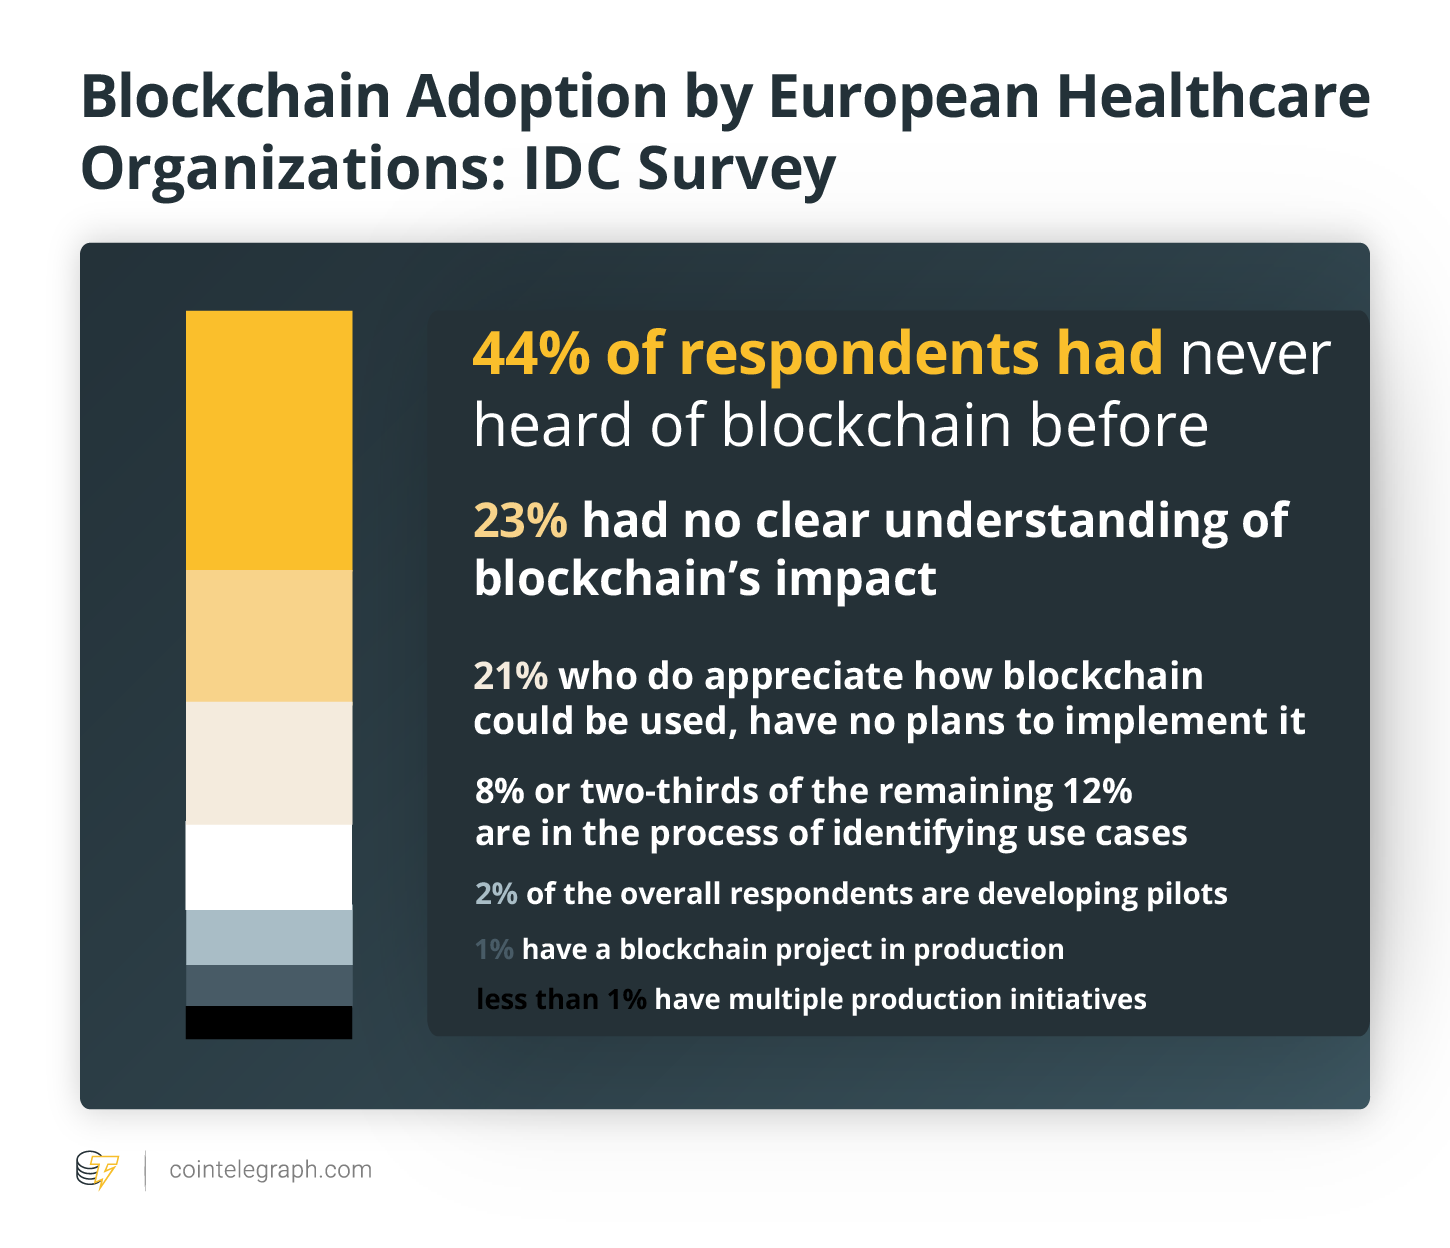 Blockchain Adoption by European Healthcare Organizations: IDC Survey